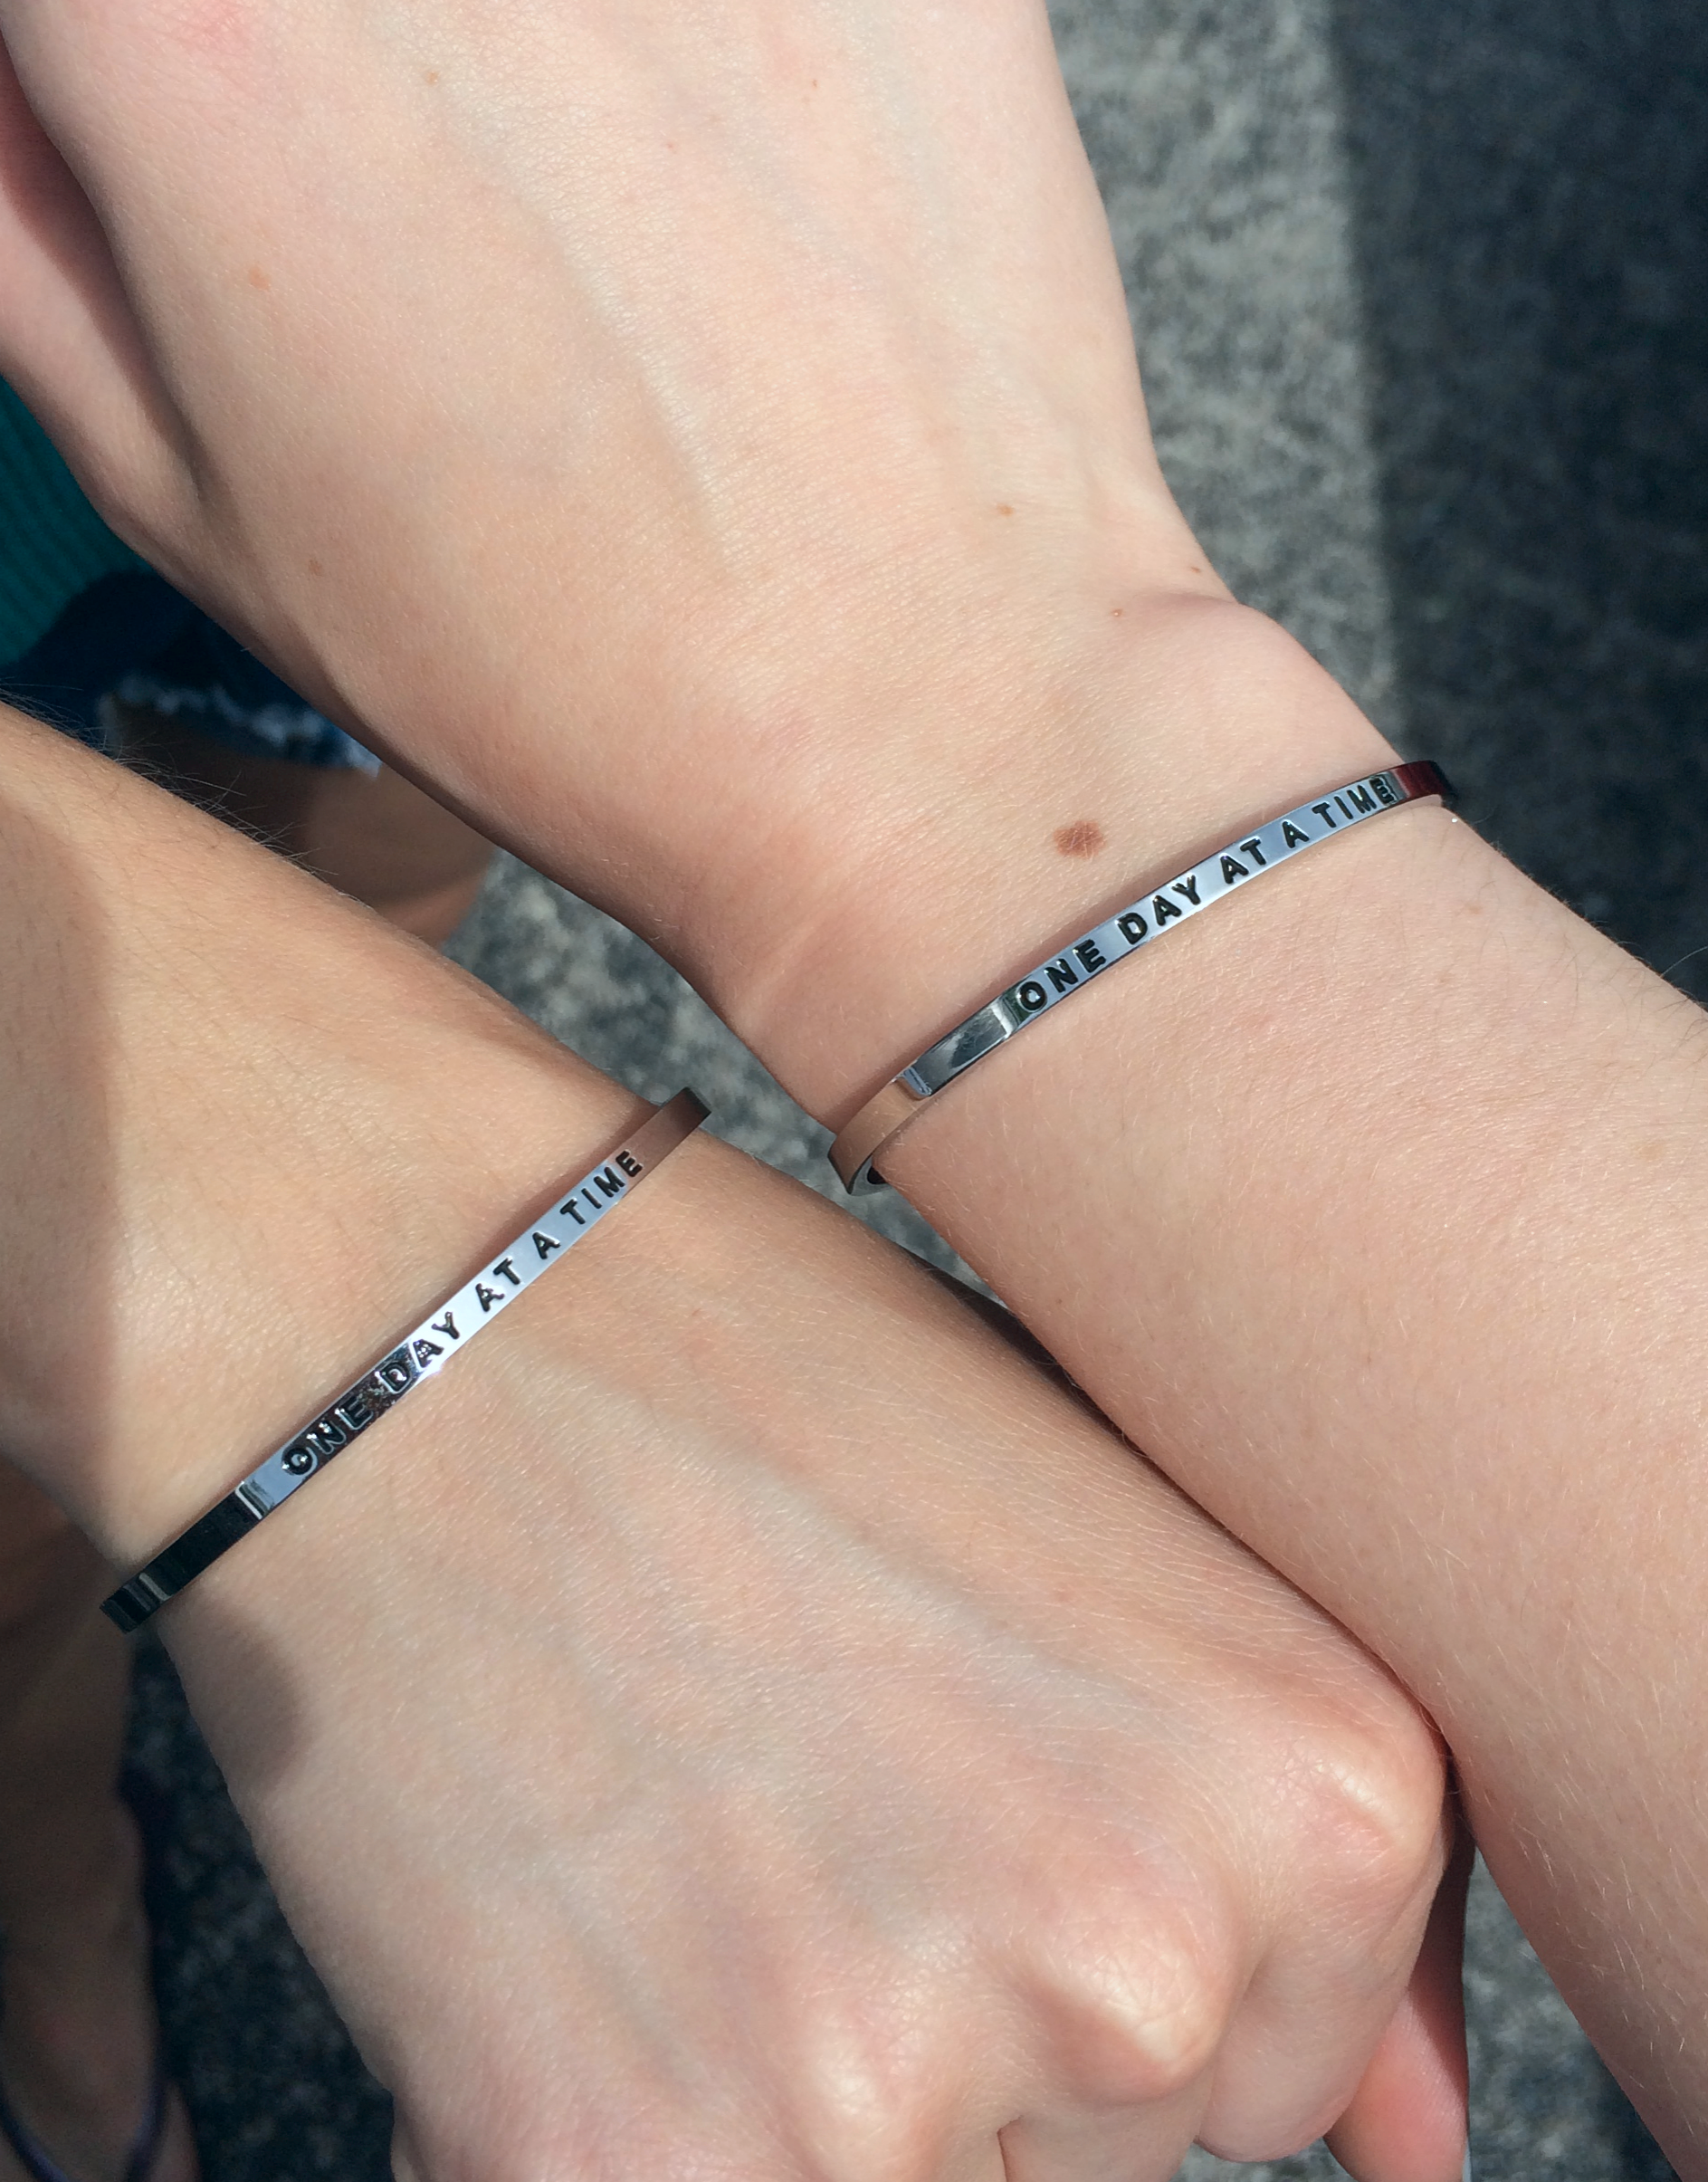 Showing off our matching  Mantra Bands .